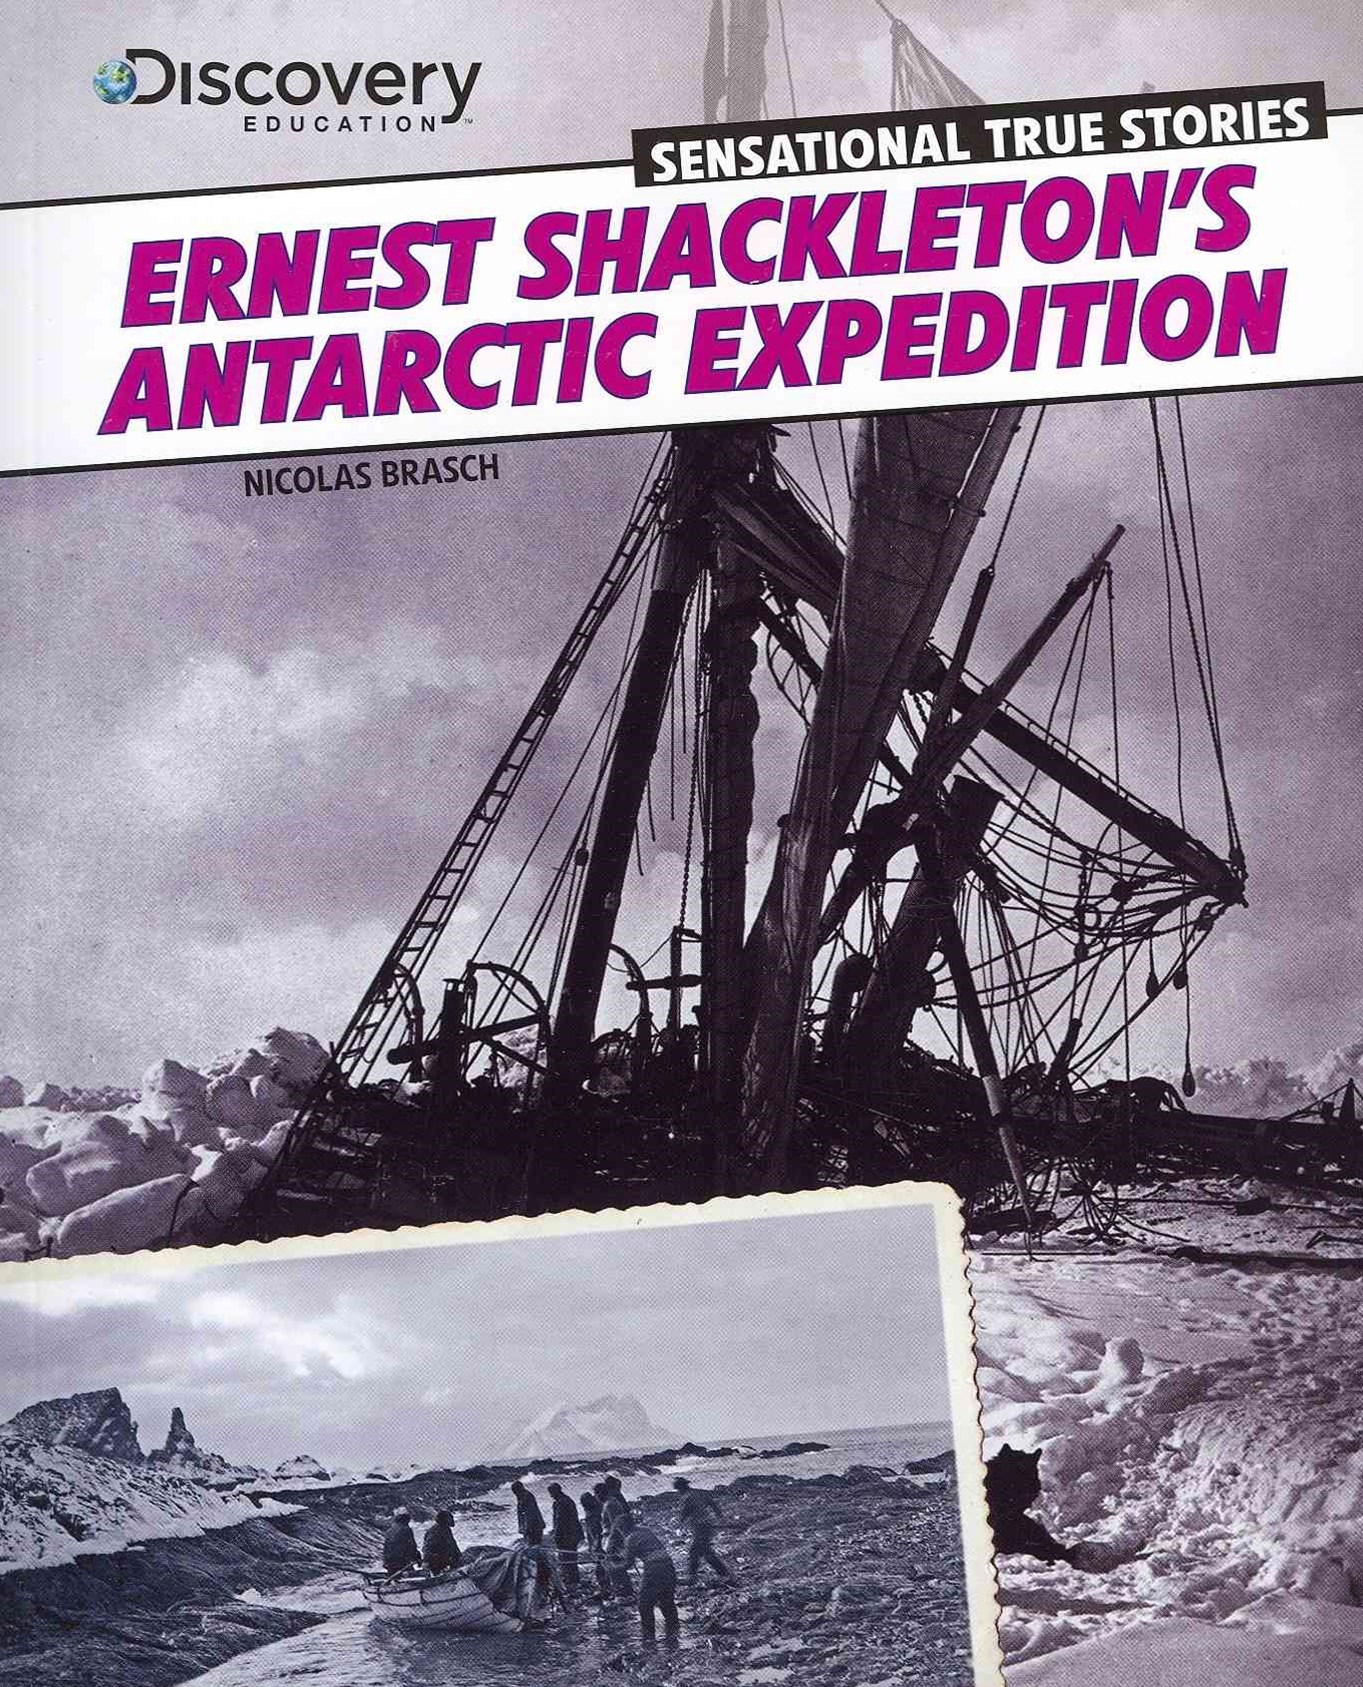 Ernest Shackleton's Antarctic Expedition